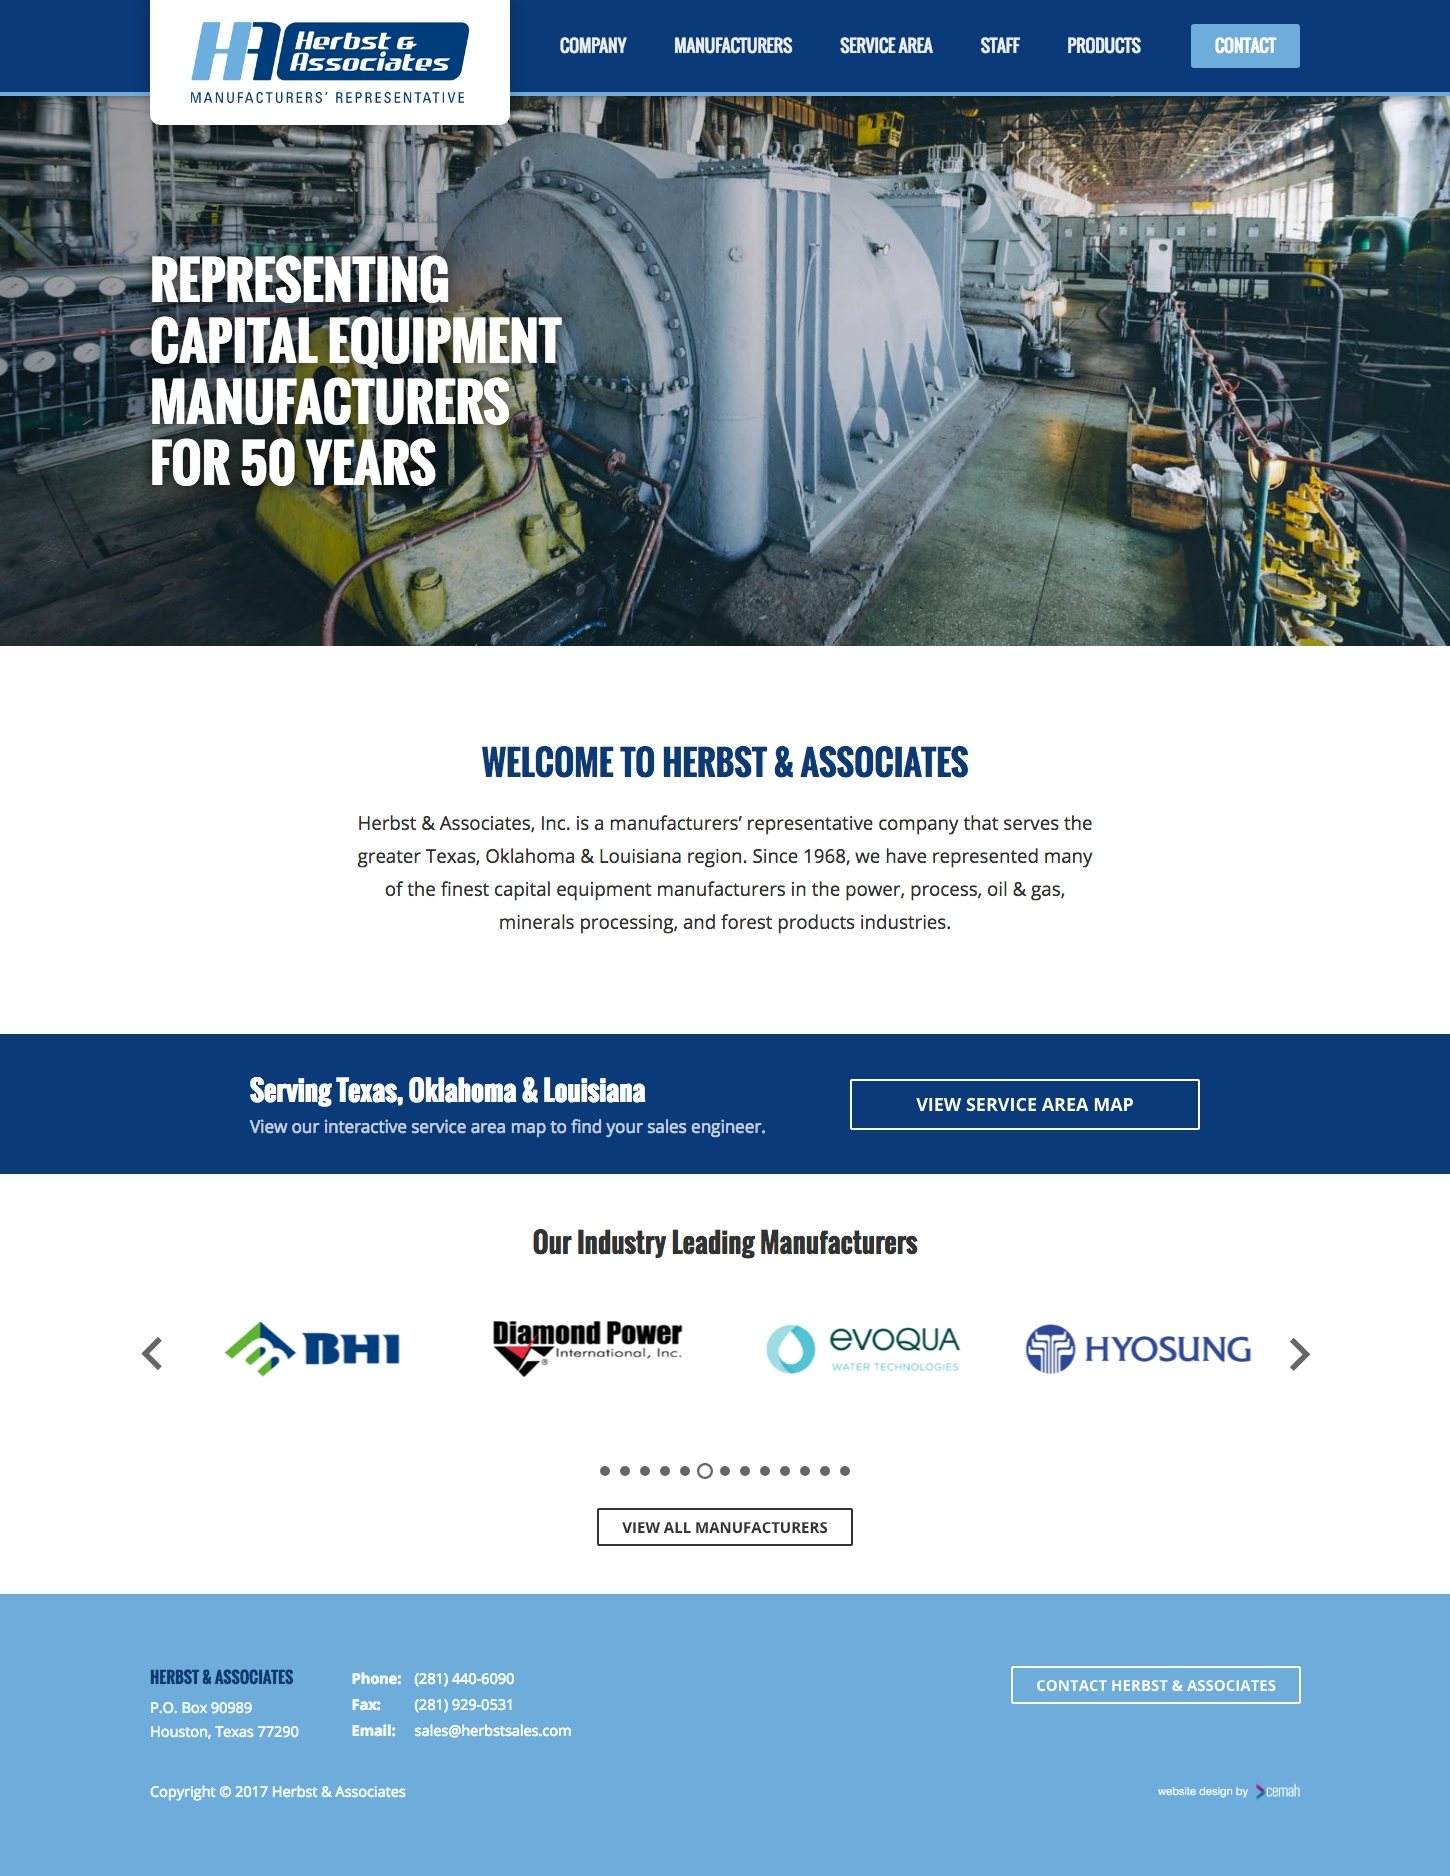 Manufacturing website design layout featuring the homepage for an oil and gas industry representative small business